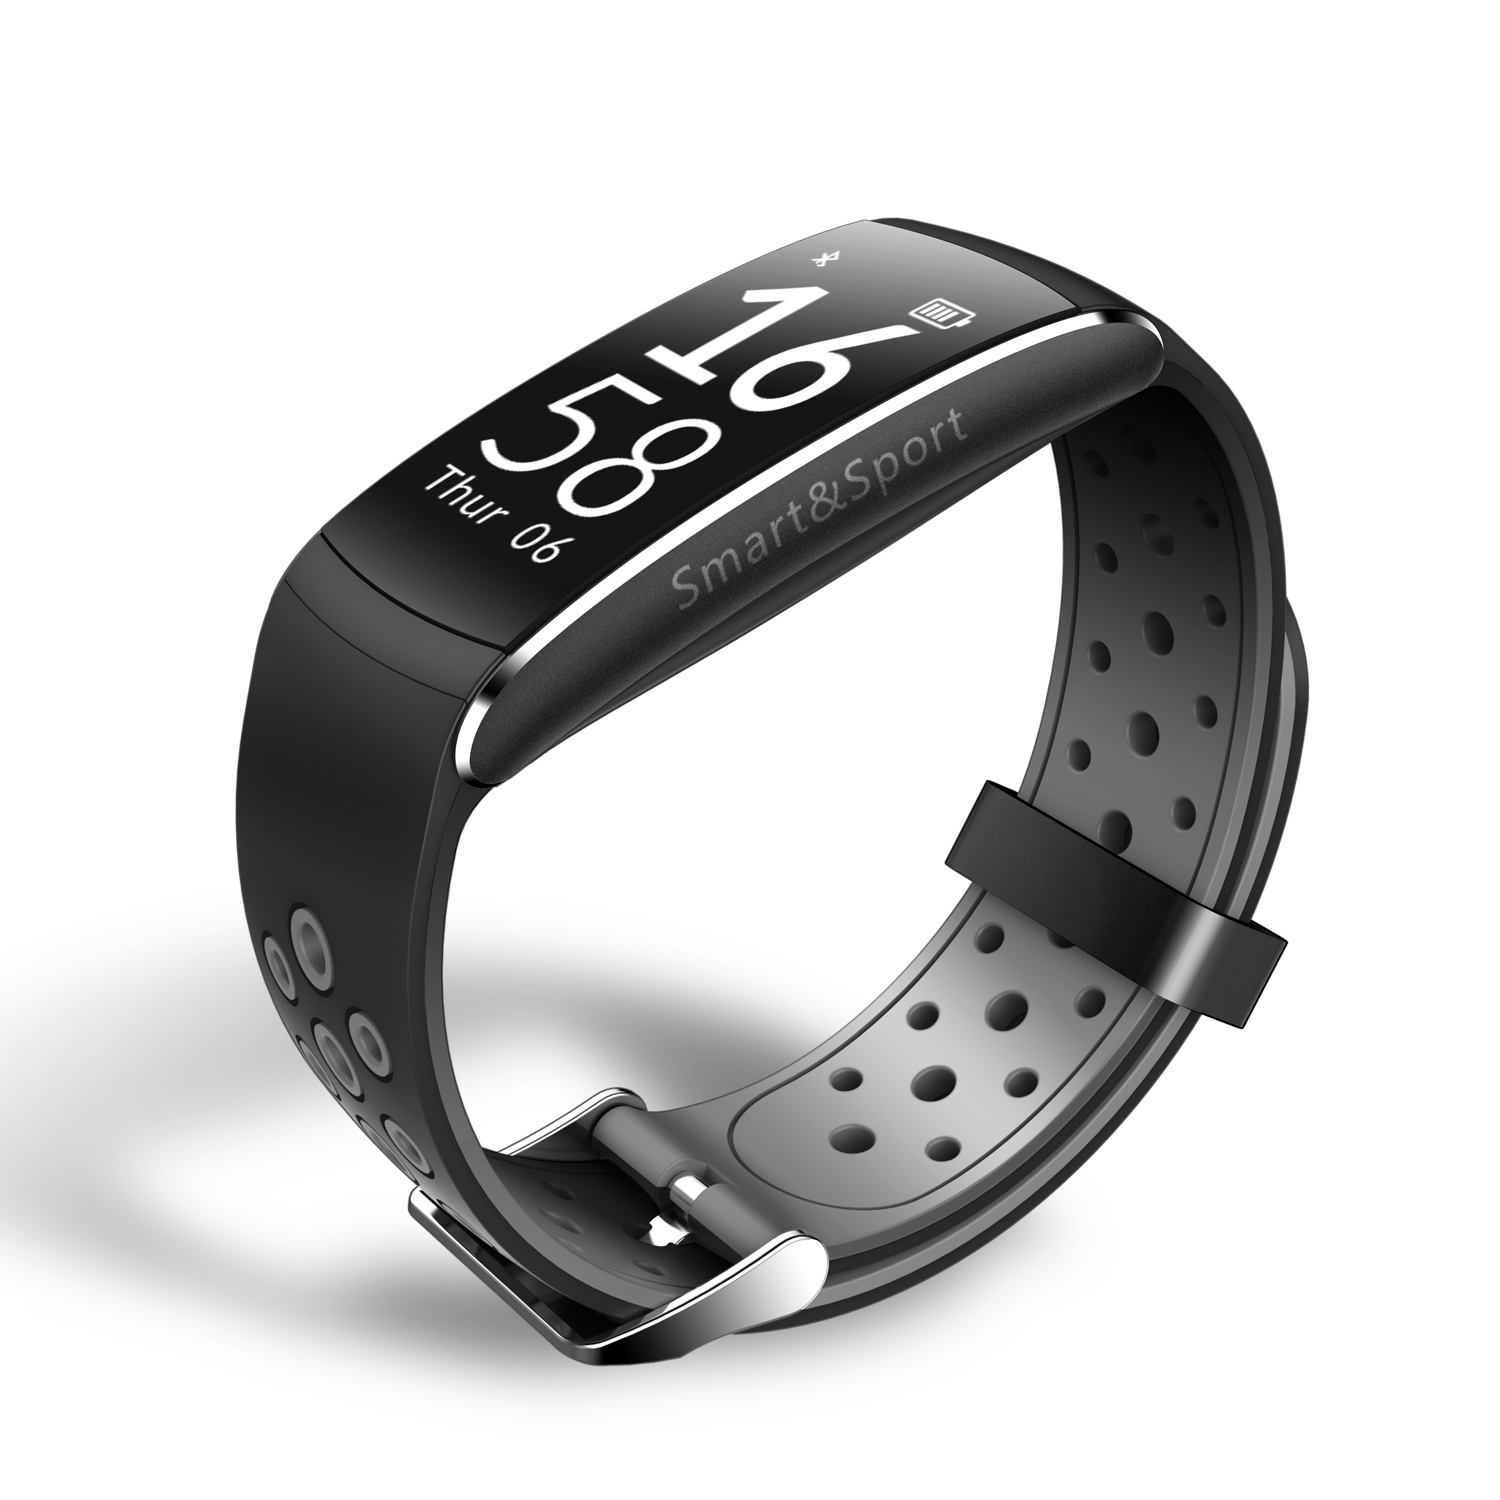 Waterproof Fitness Activity Tracker w/ Swimming Mode - Black image